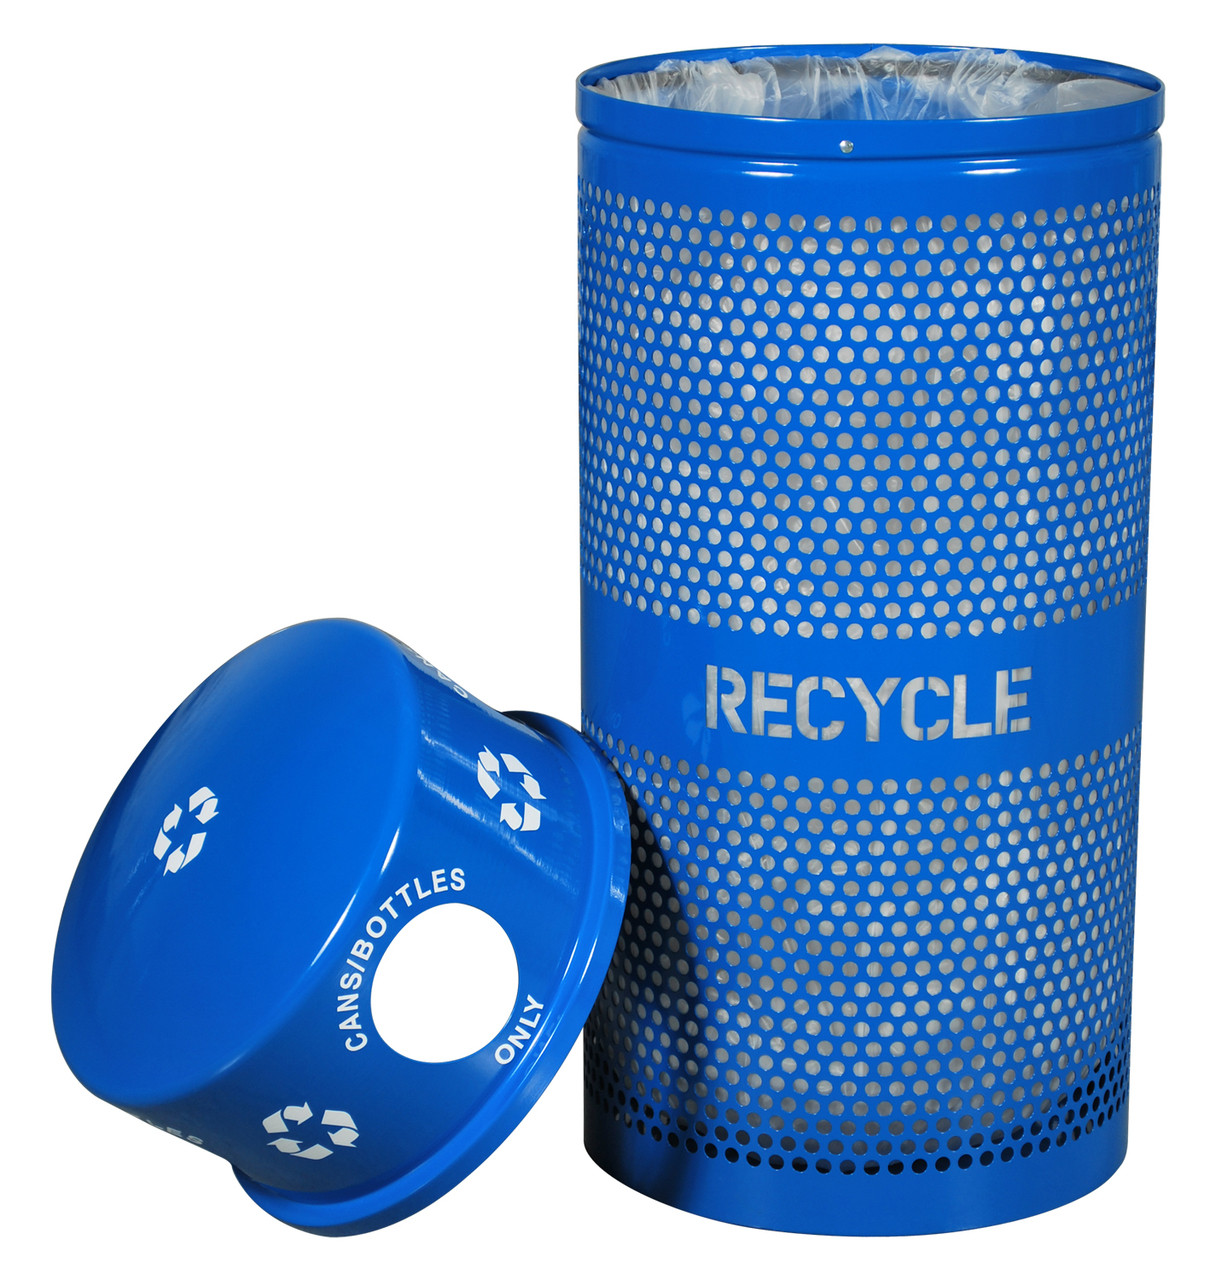 Excell Perforated 34 Gallon Recycling Receptacle for Cans/Bottles with Lid Off